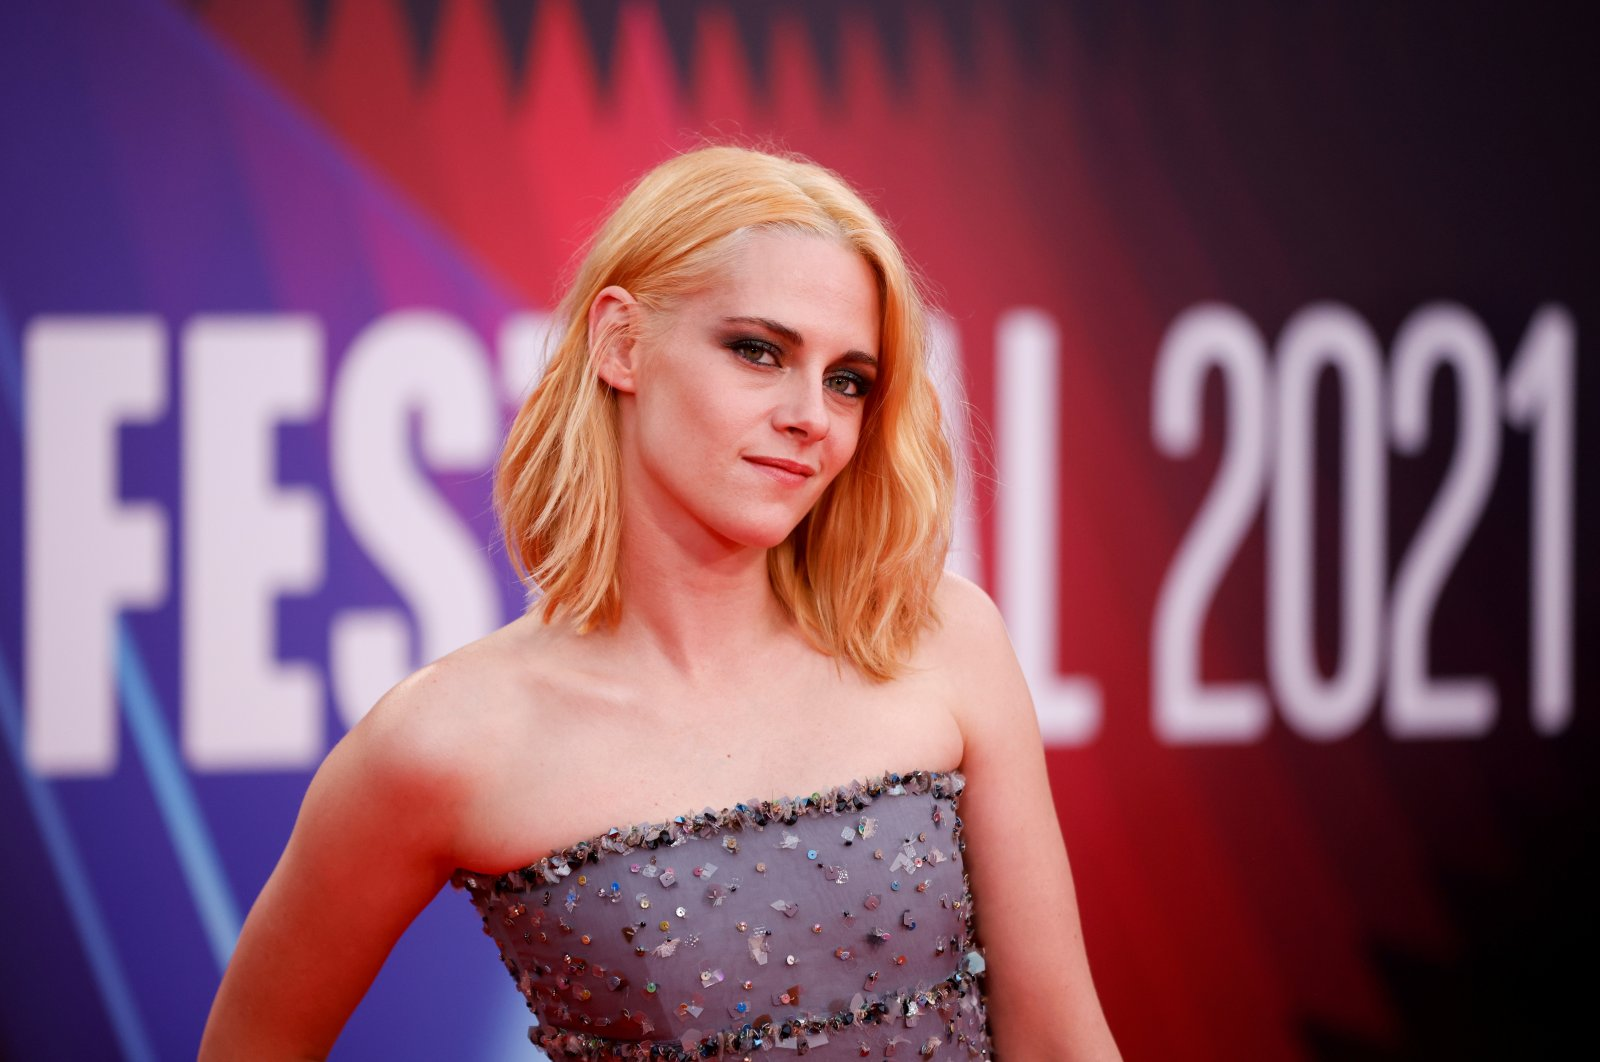 """Actress Kristen Stewart arrives at the premiere for """"Spencer"""" during the BFI film festival in London, U.K., Oct. 7, 2021. (Reuters Photo)"""